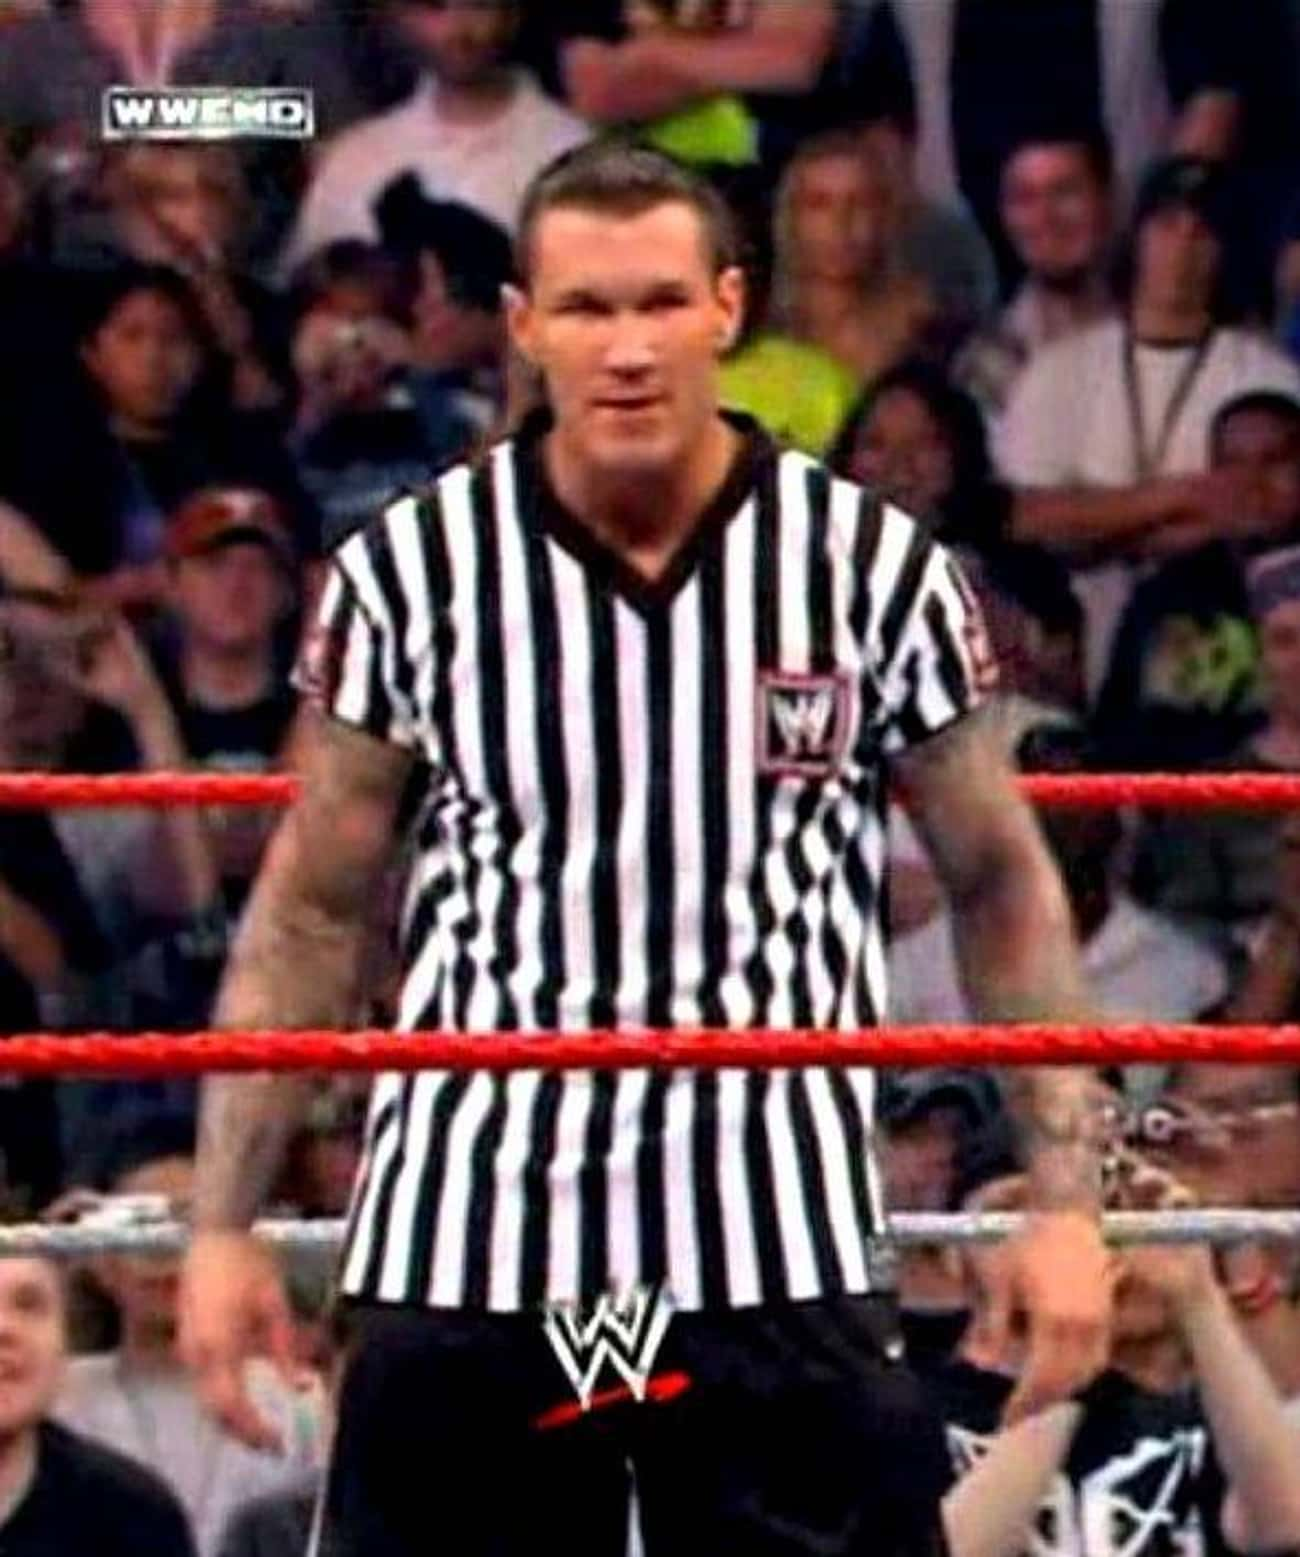 He Was A Referee is listed (or ranked) 2 on the list Five Things You Should Know About Randy Orton